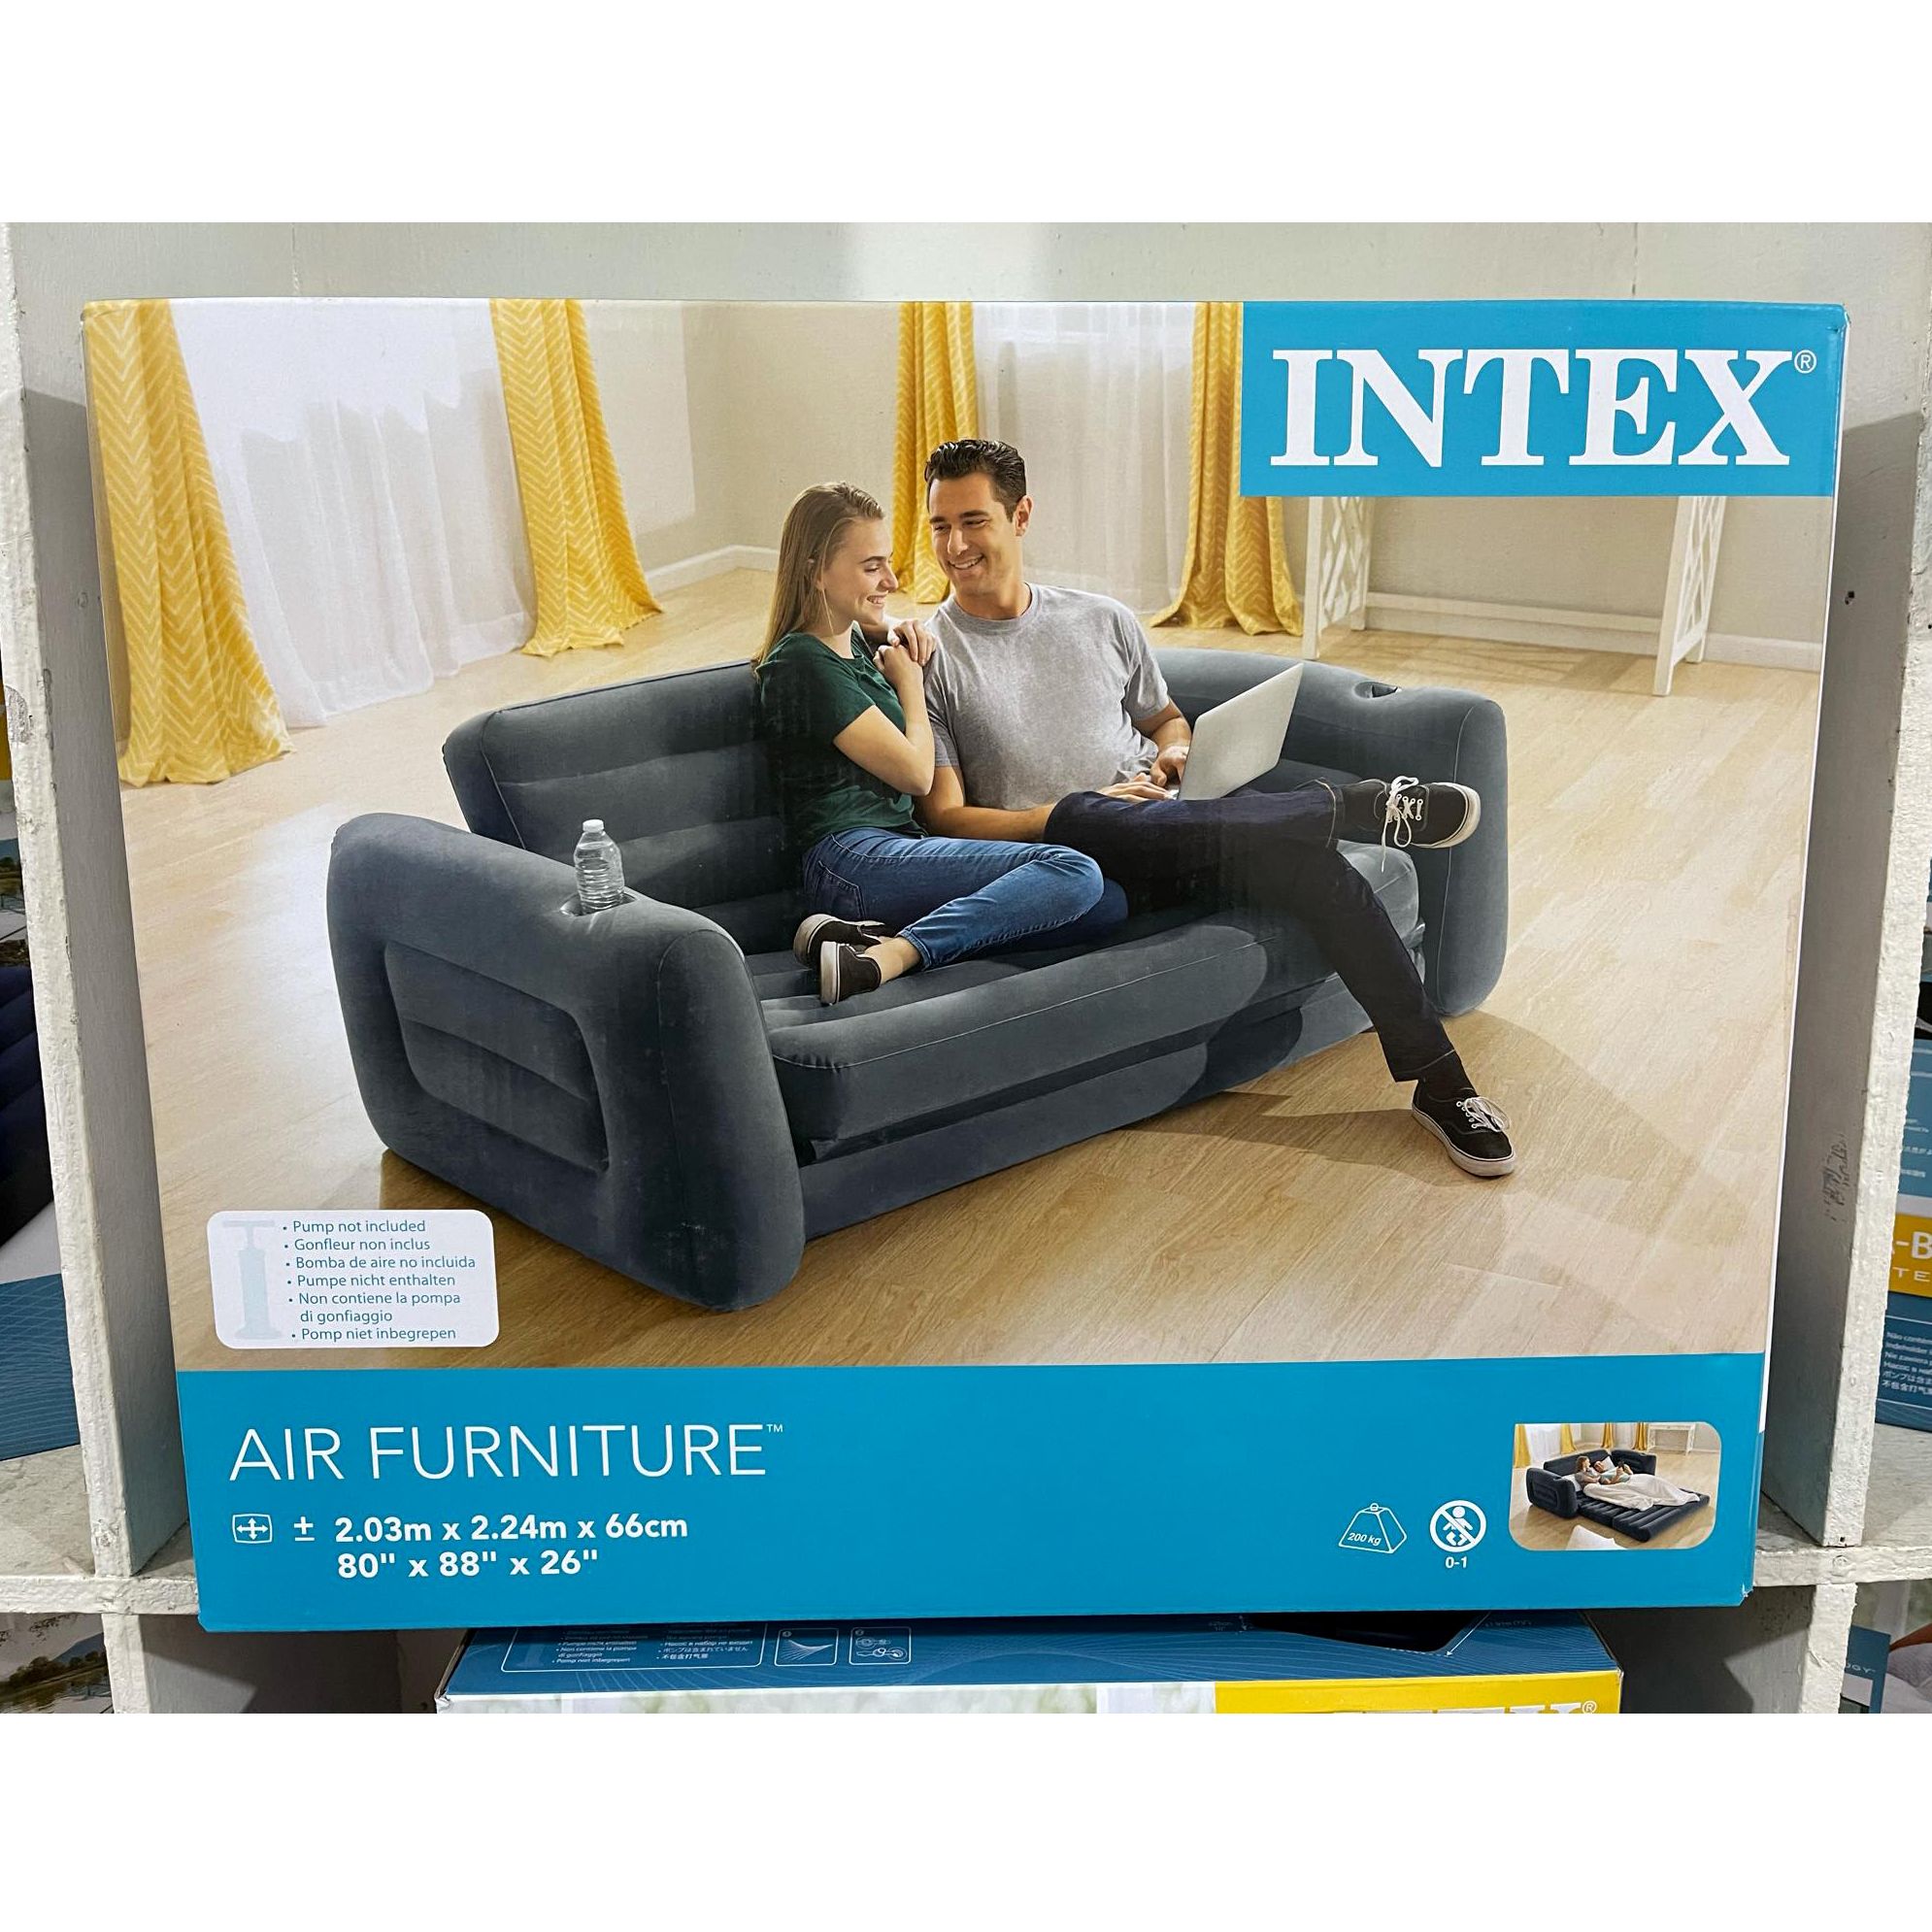 Intex Inflatable Pull-Out Sofa cum Bed with Pumper (Double